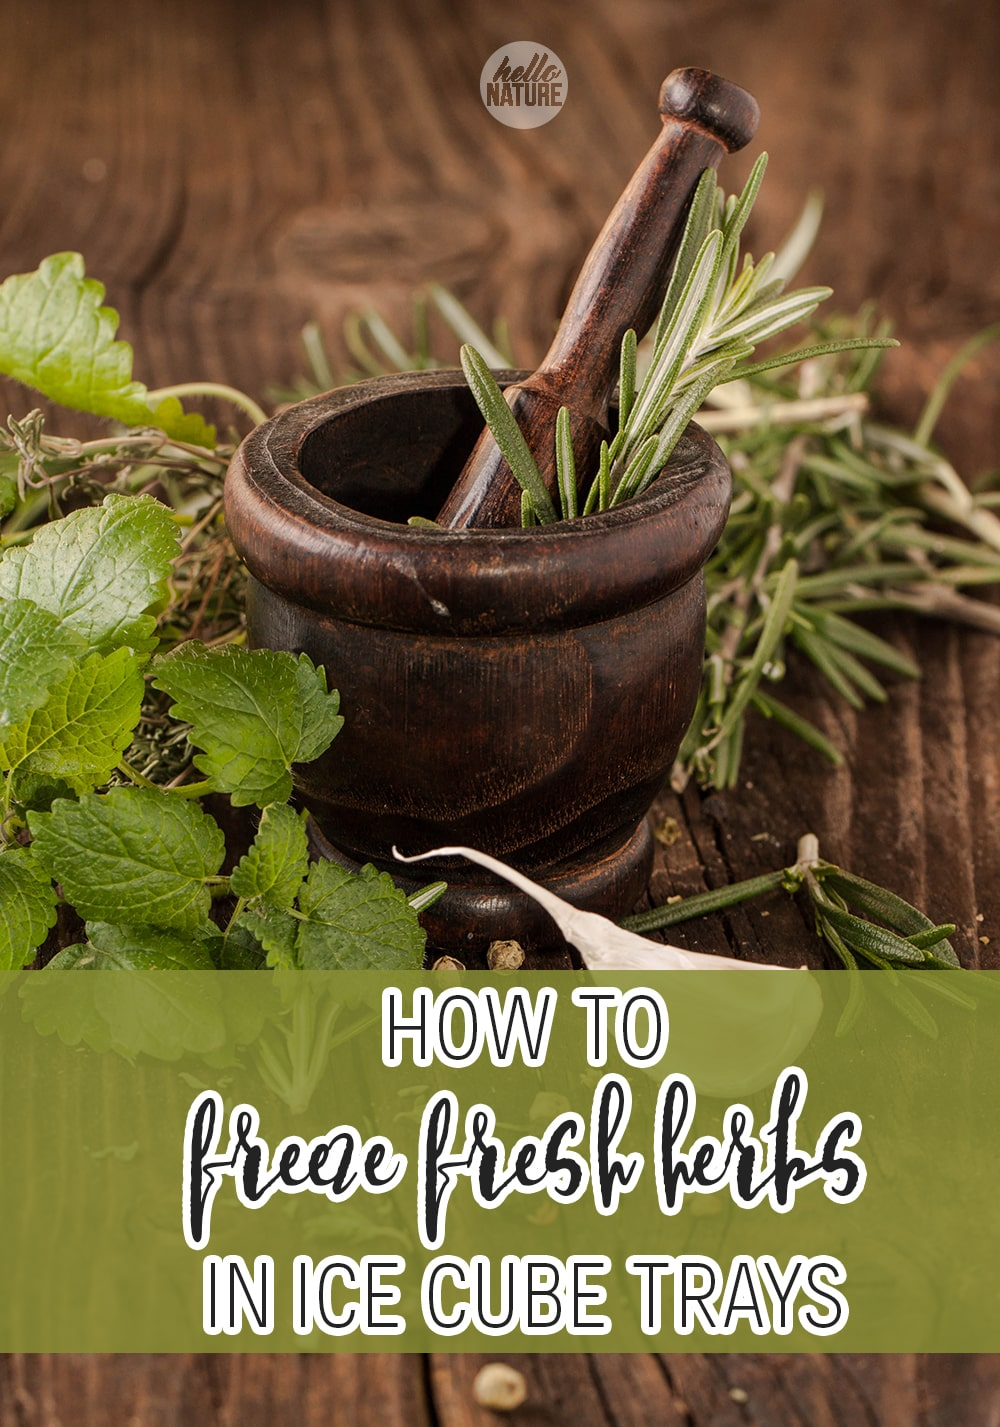 Freezing fresh herbs is one of the best ways to preserve fresh herbs! Learn how to preserve fresh herbs by freezing them in this simple guide.